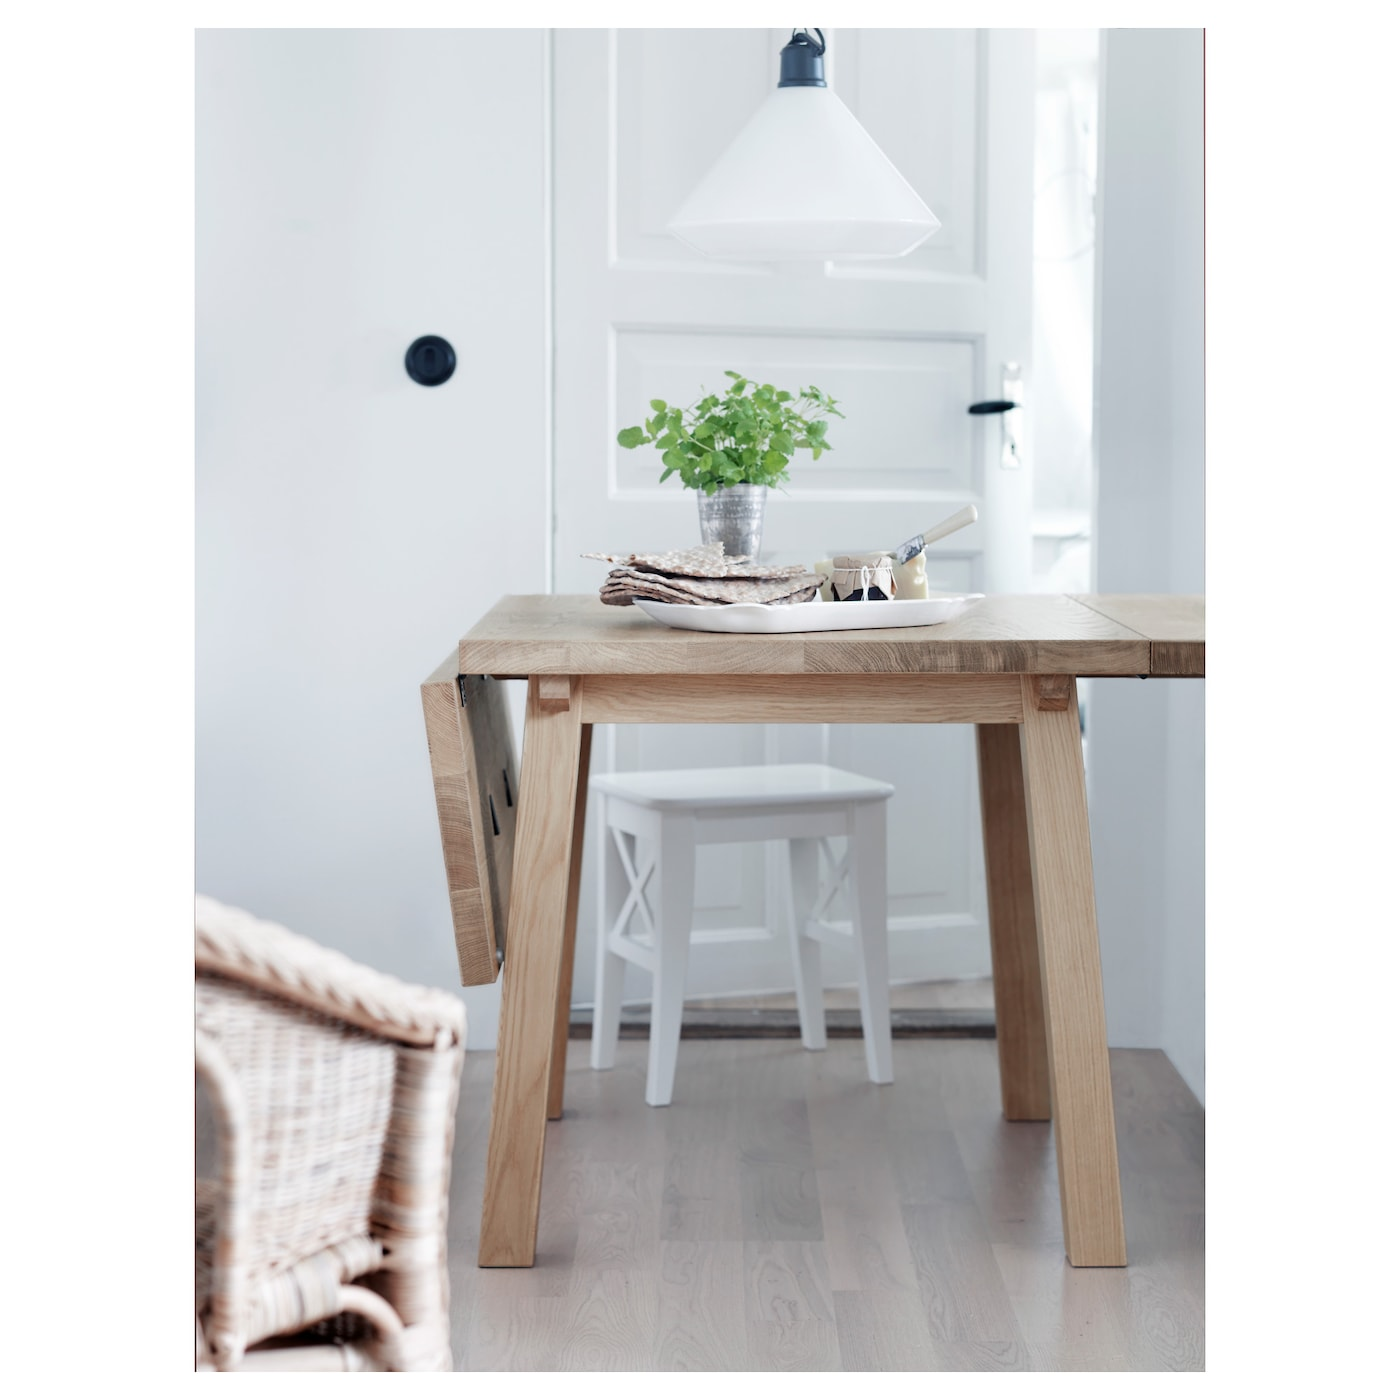 M ckelby drop leaf table oak 79 114 150x79 cm ikea - Ikea neuheiten 2018 ...